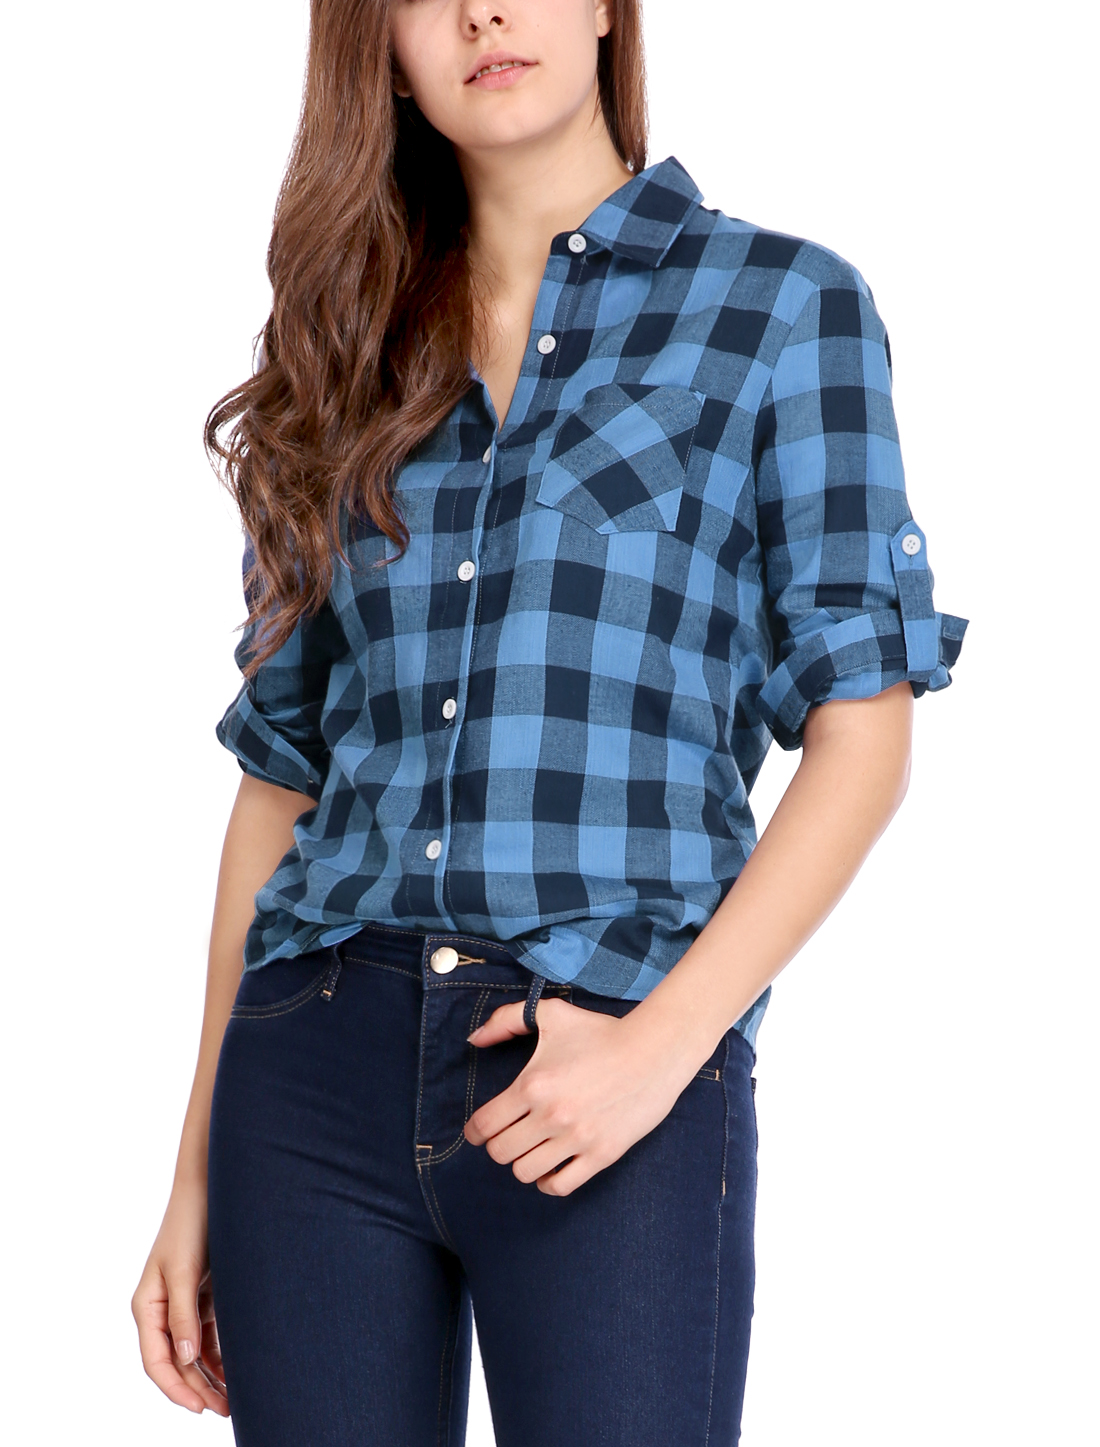 Ladies Roll Up Sleeves Point Collar Checks Shirt Black Blue M